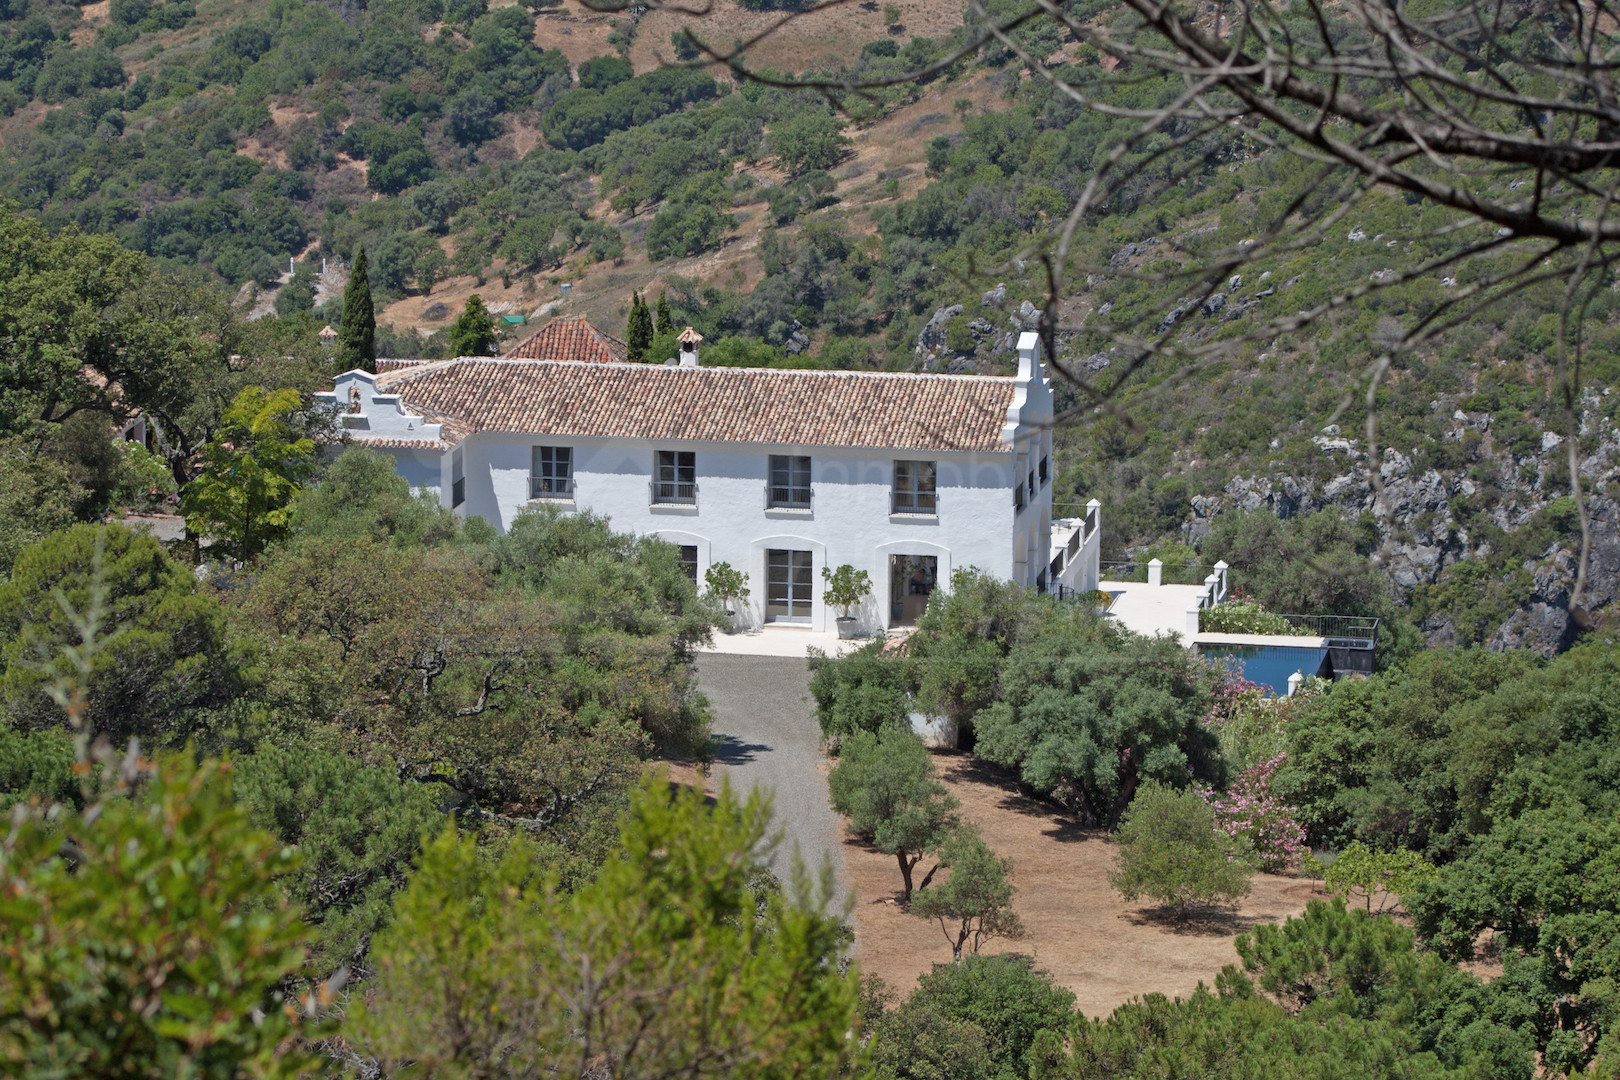 Magnificent 10 bedroom country estate for sale in Casares